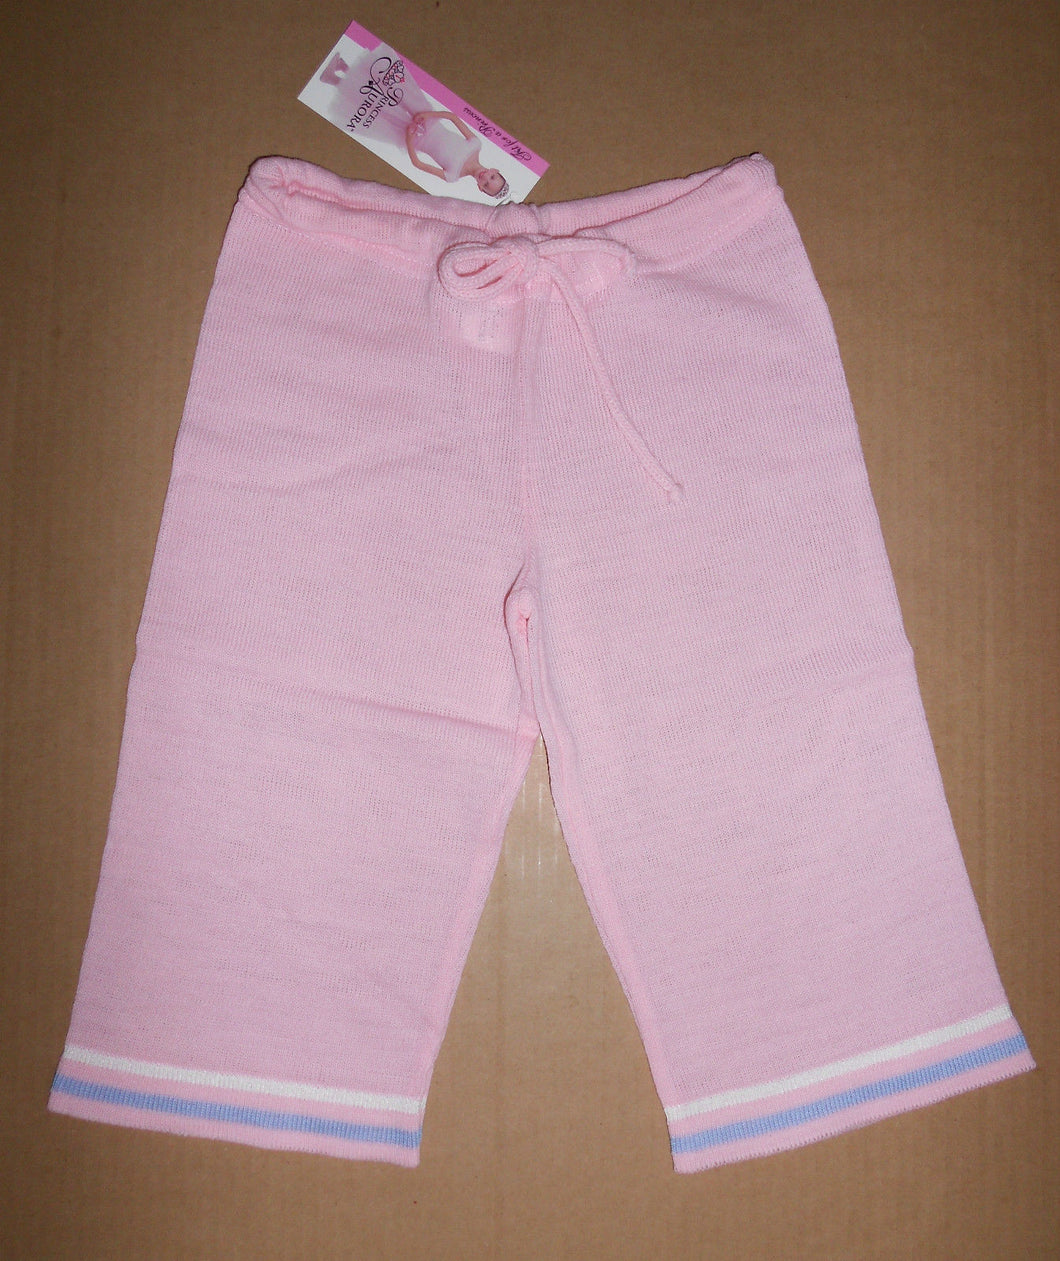 Girls Body Wrappers Knit Pants/Pedal Pushers Pink